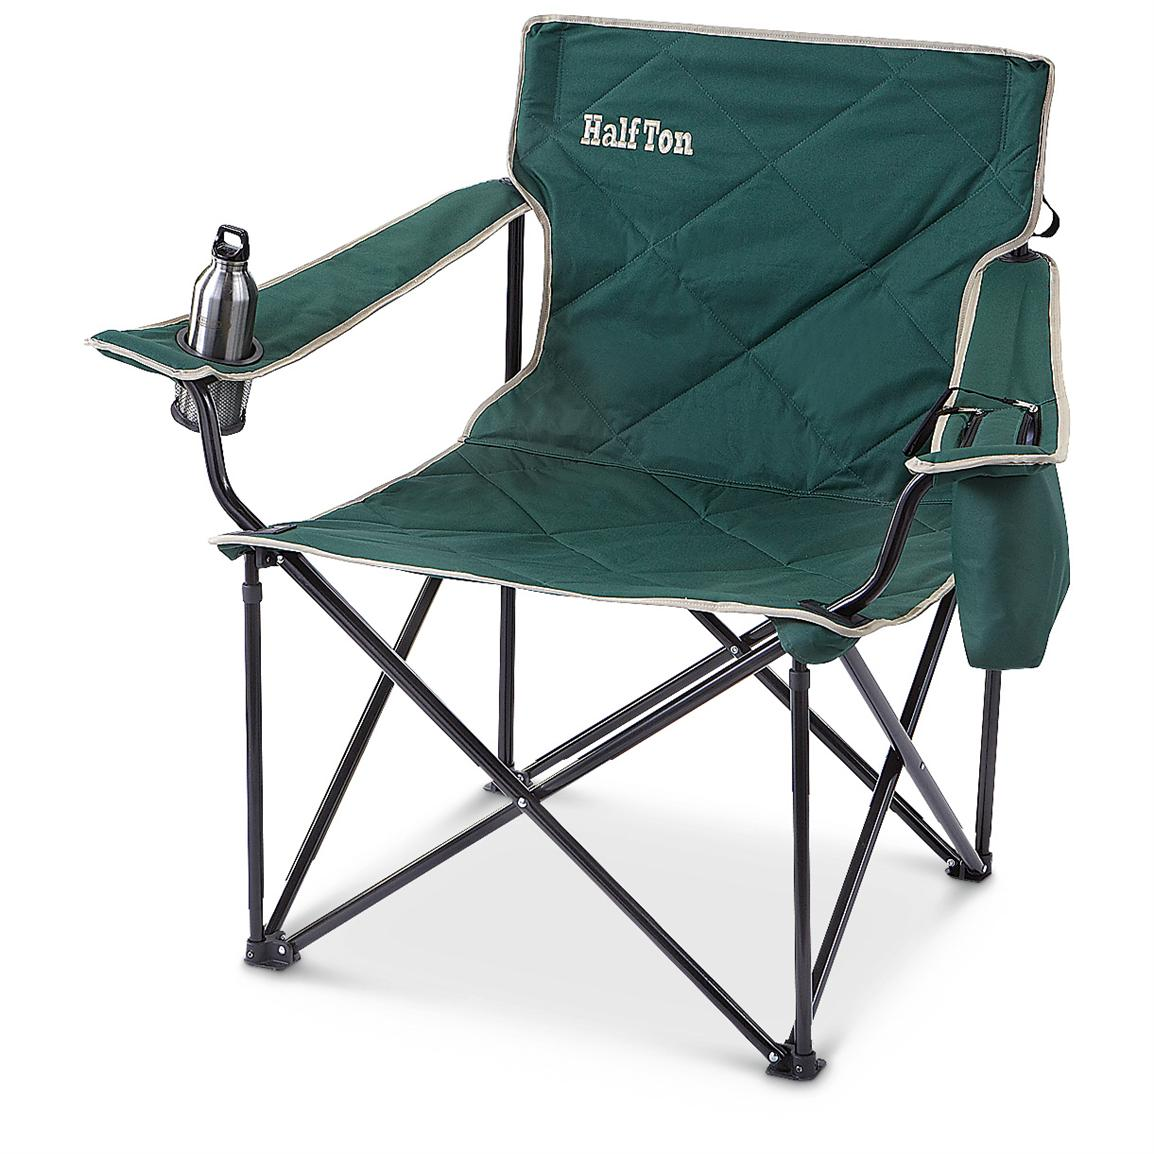 Campfire Chairs Guide Gear 1 2 Ton Foldable Camp Chair Forest Green